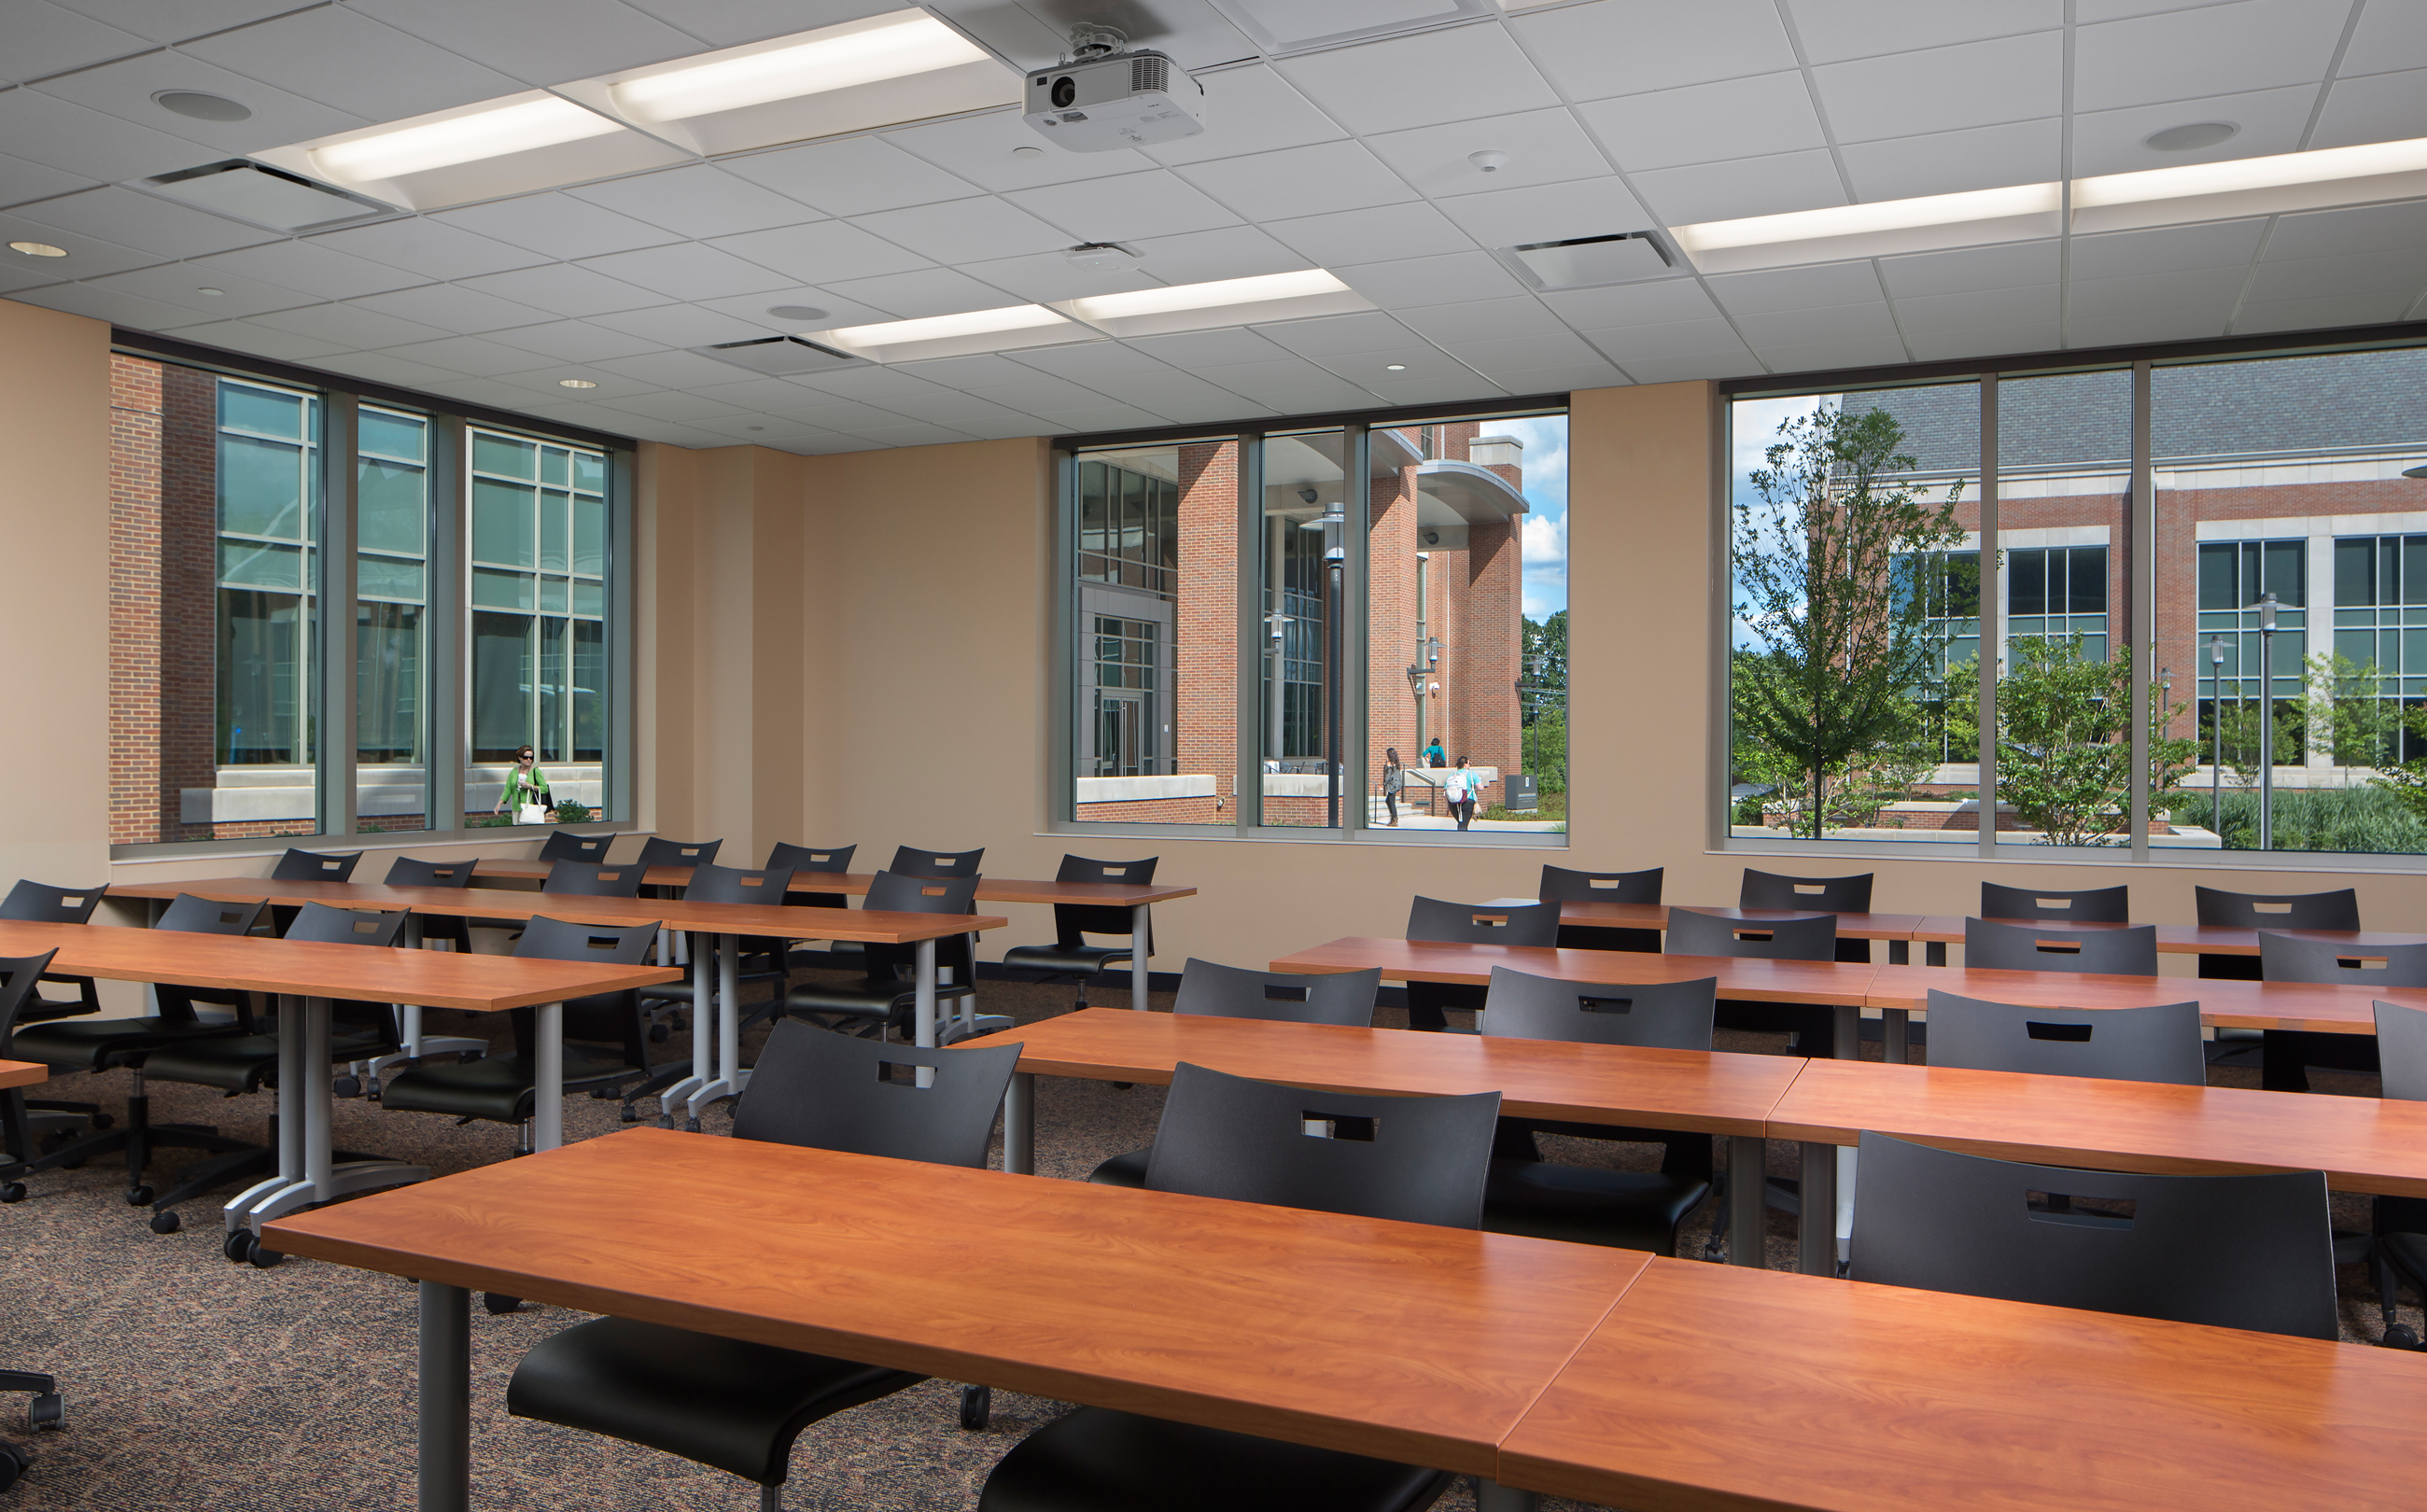 Columbia State Community College, Franklin, Tennessee, architecture, design, college, education, new construction, exterior